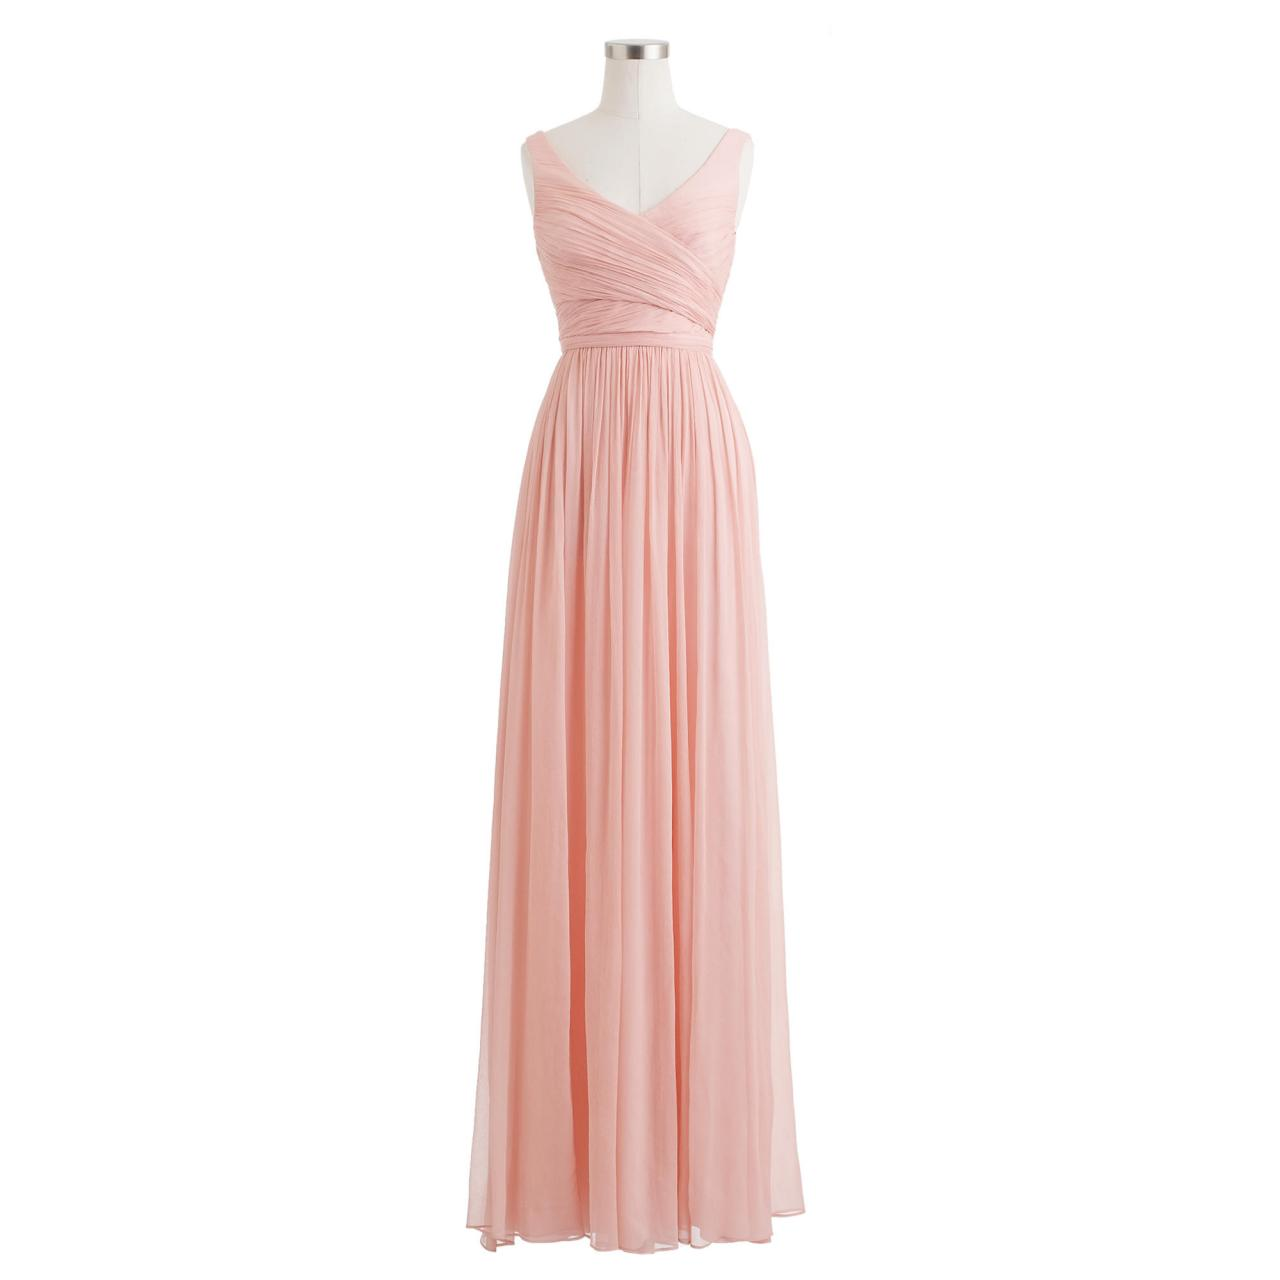 Sleeveless V neck chiffon floor length long evening dress,pleated prom dresses,A line bridesmaid dress,wedding party dress